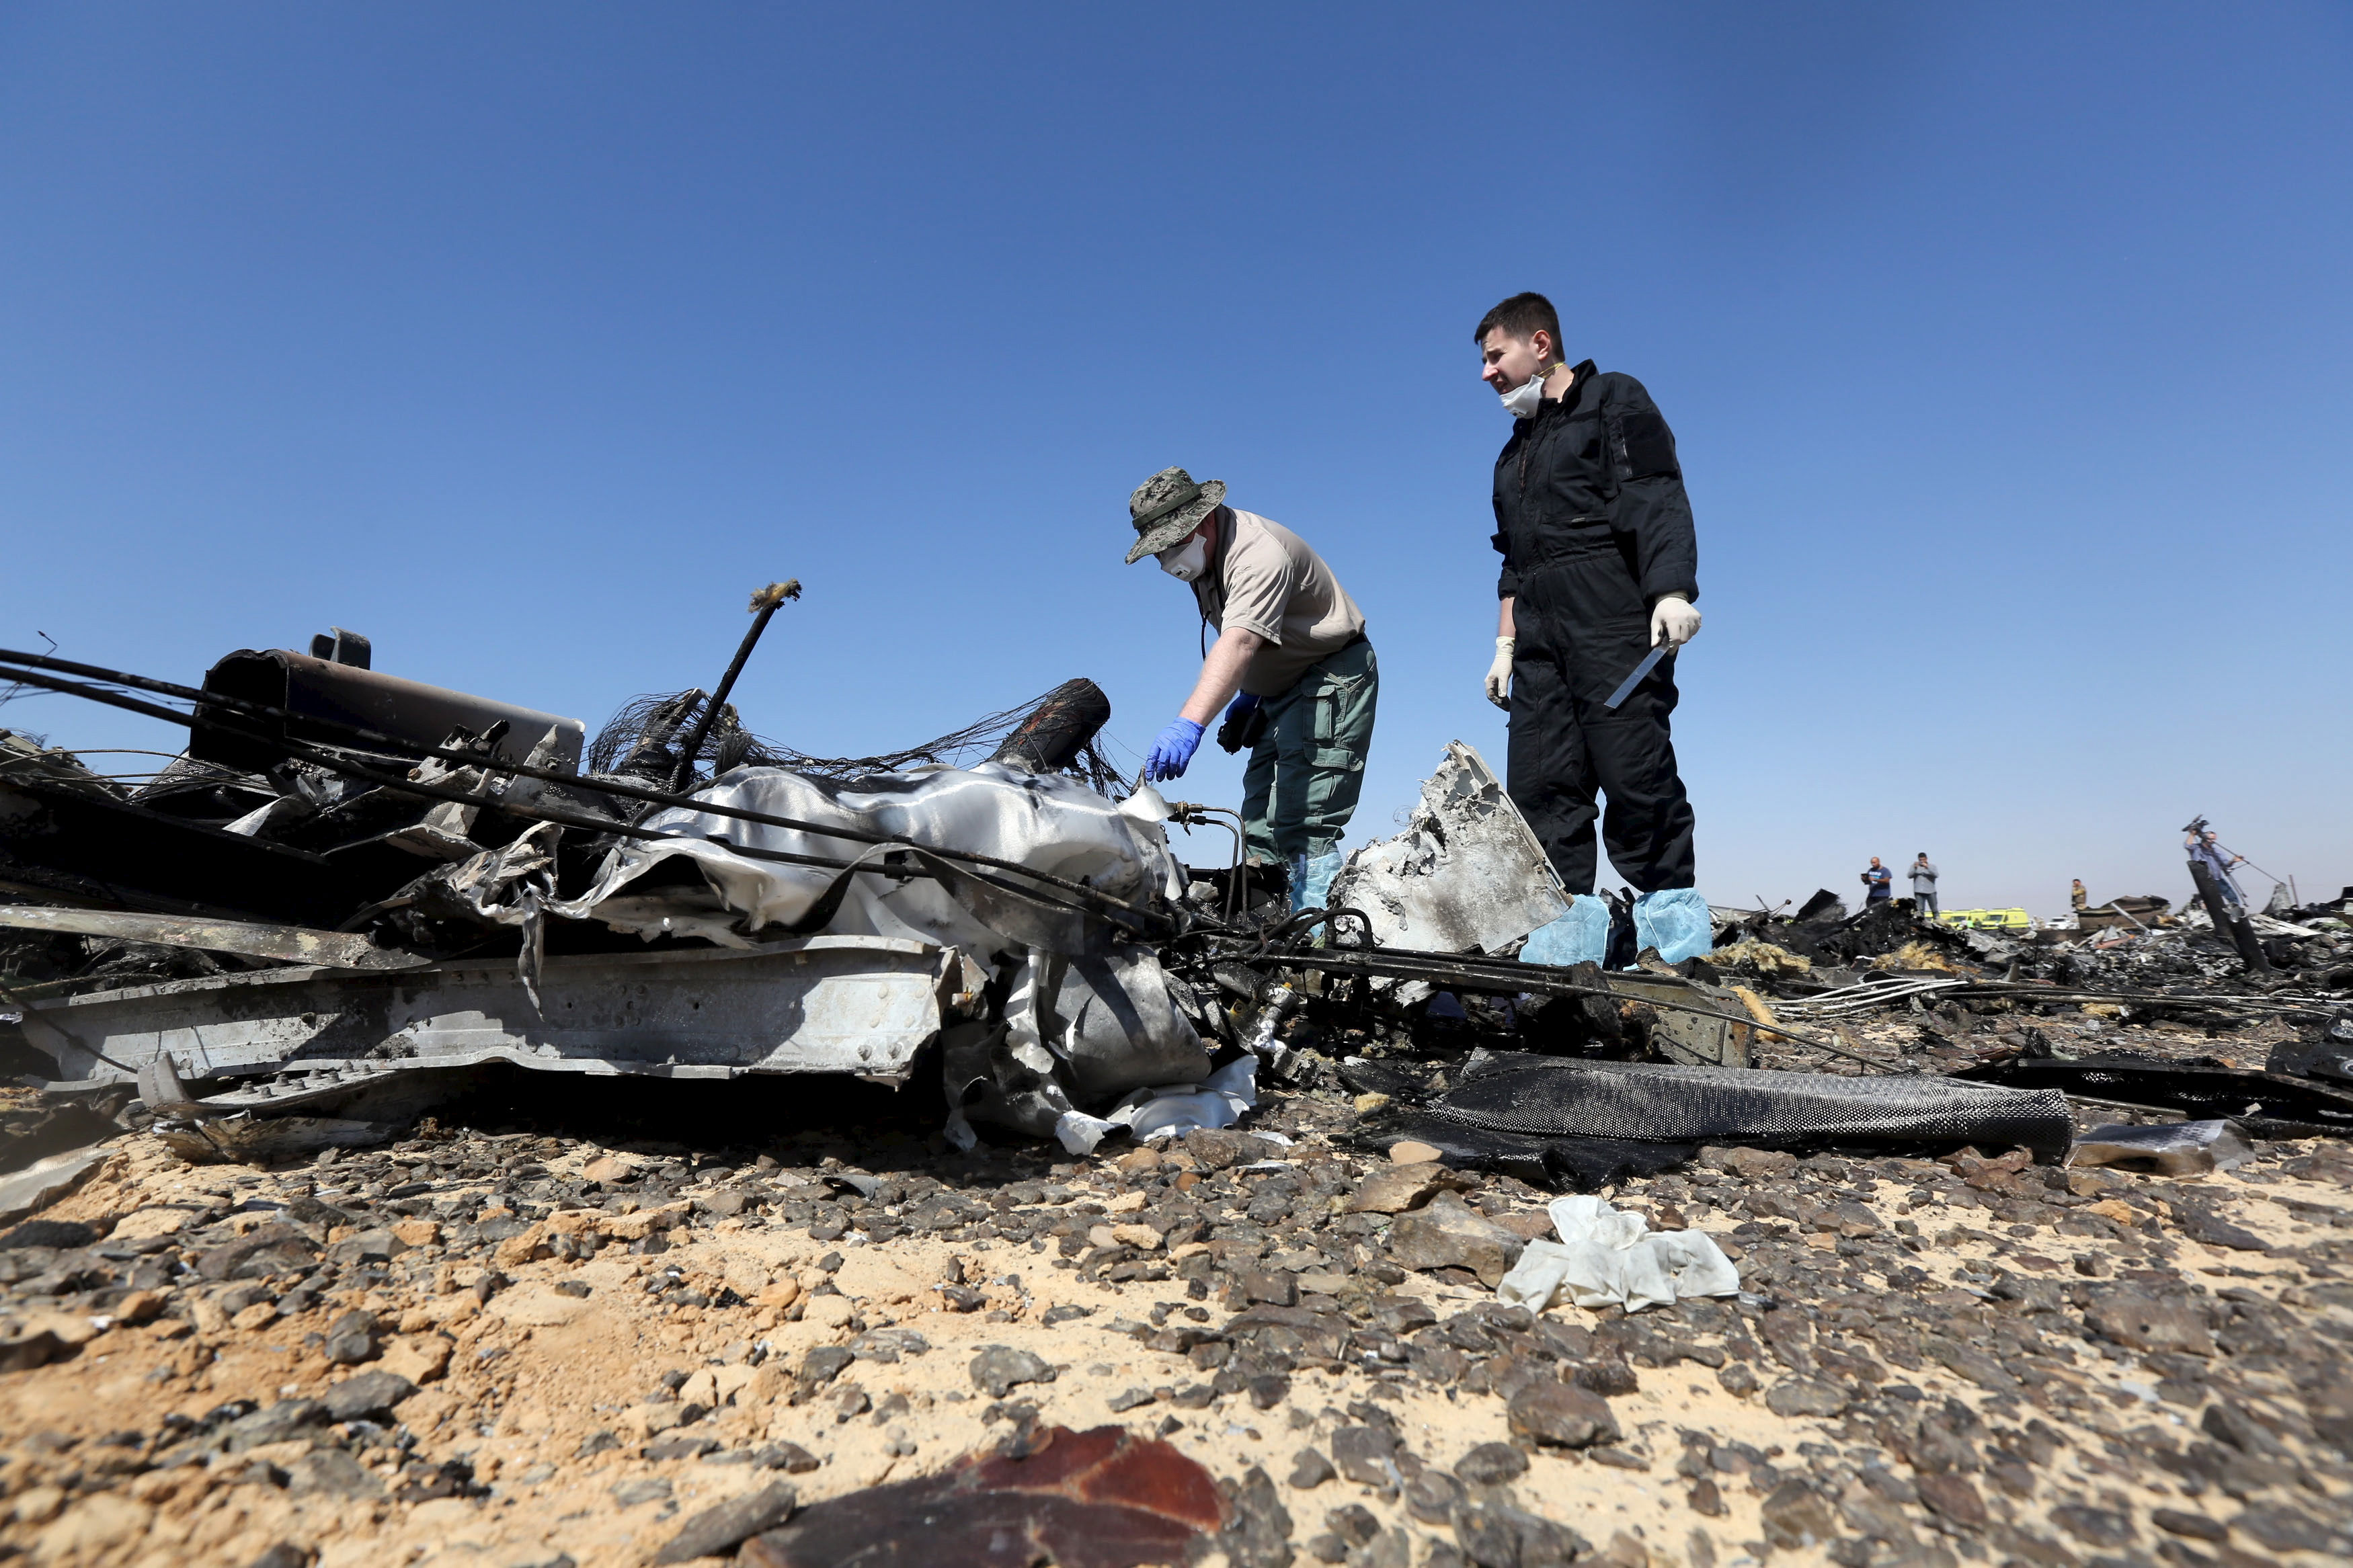 Satellite detected heat flash at time Russian jetliner went down